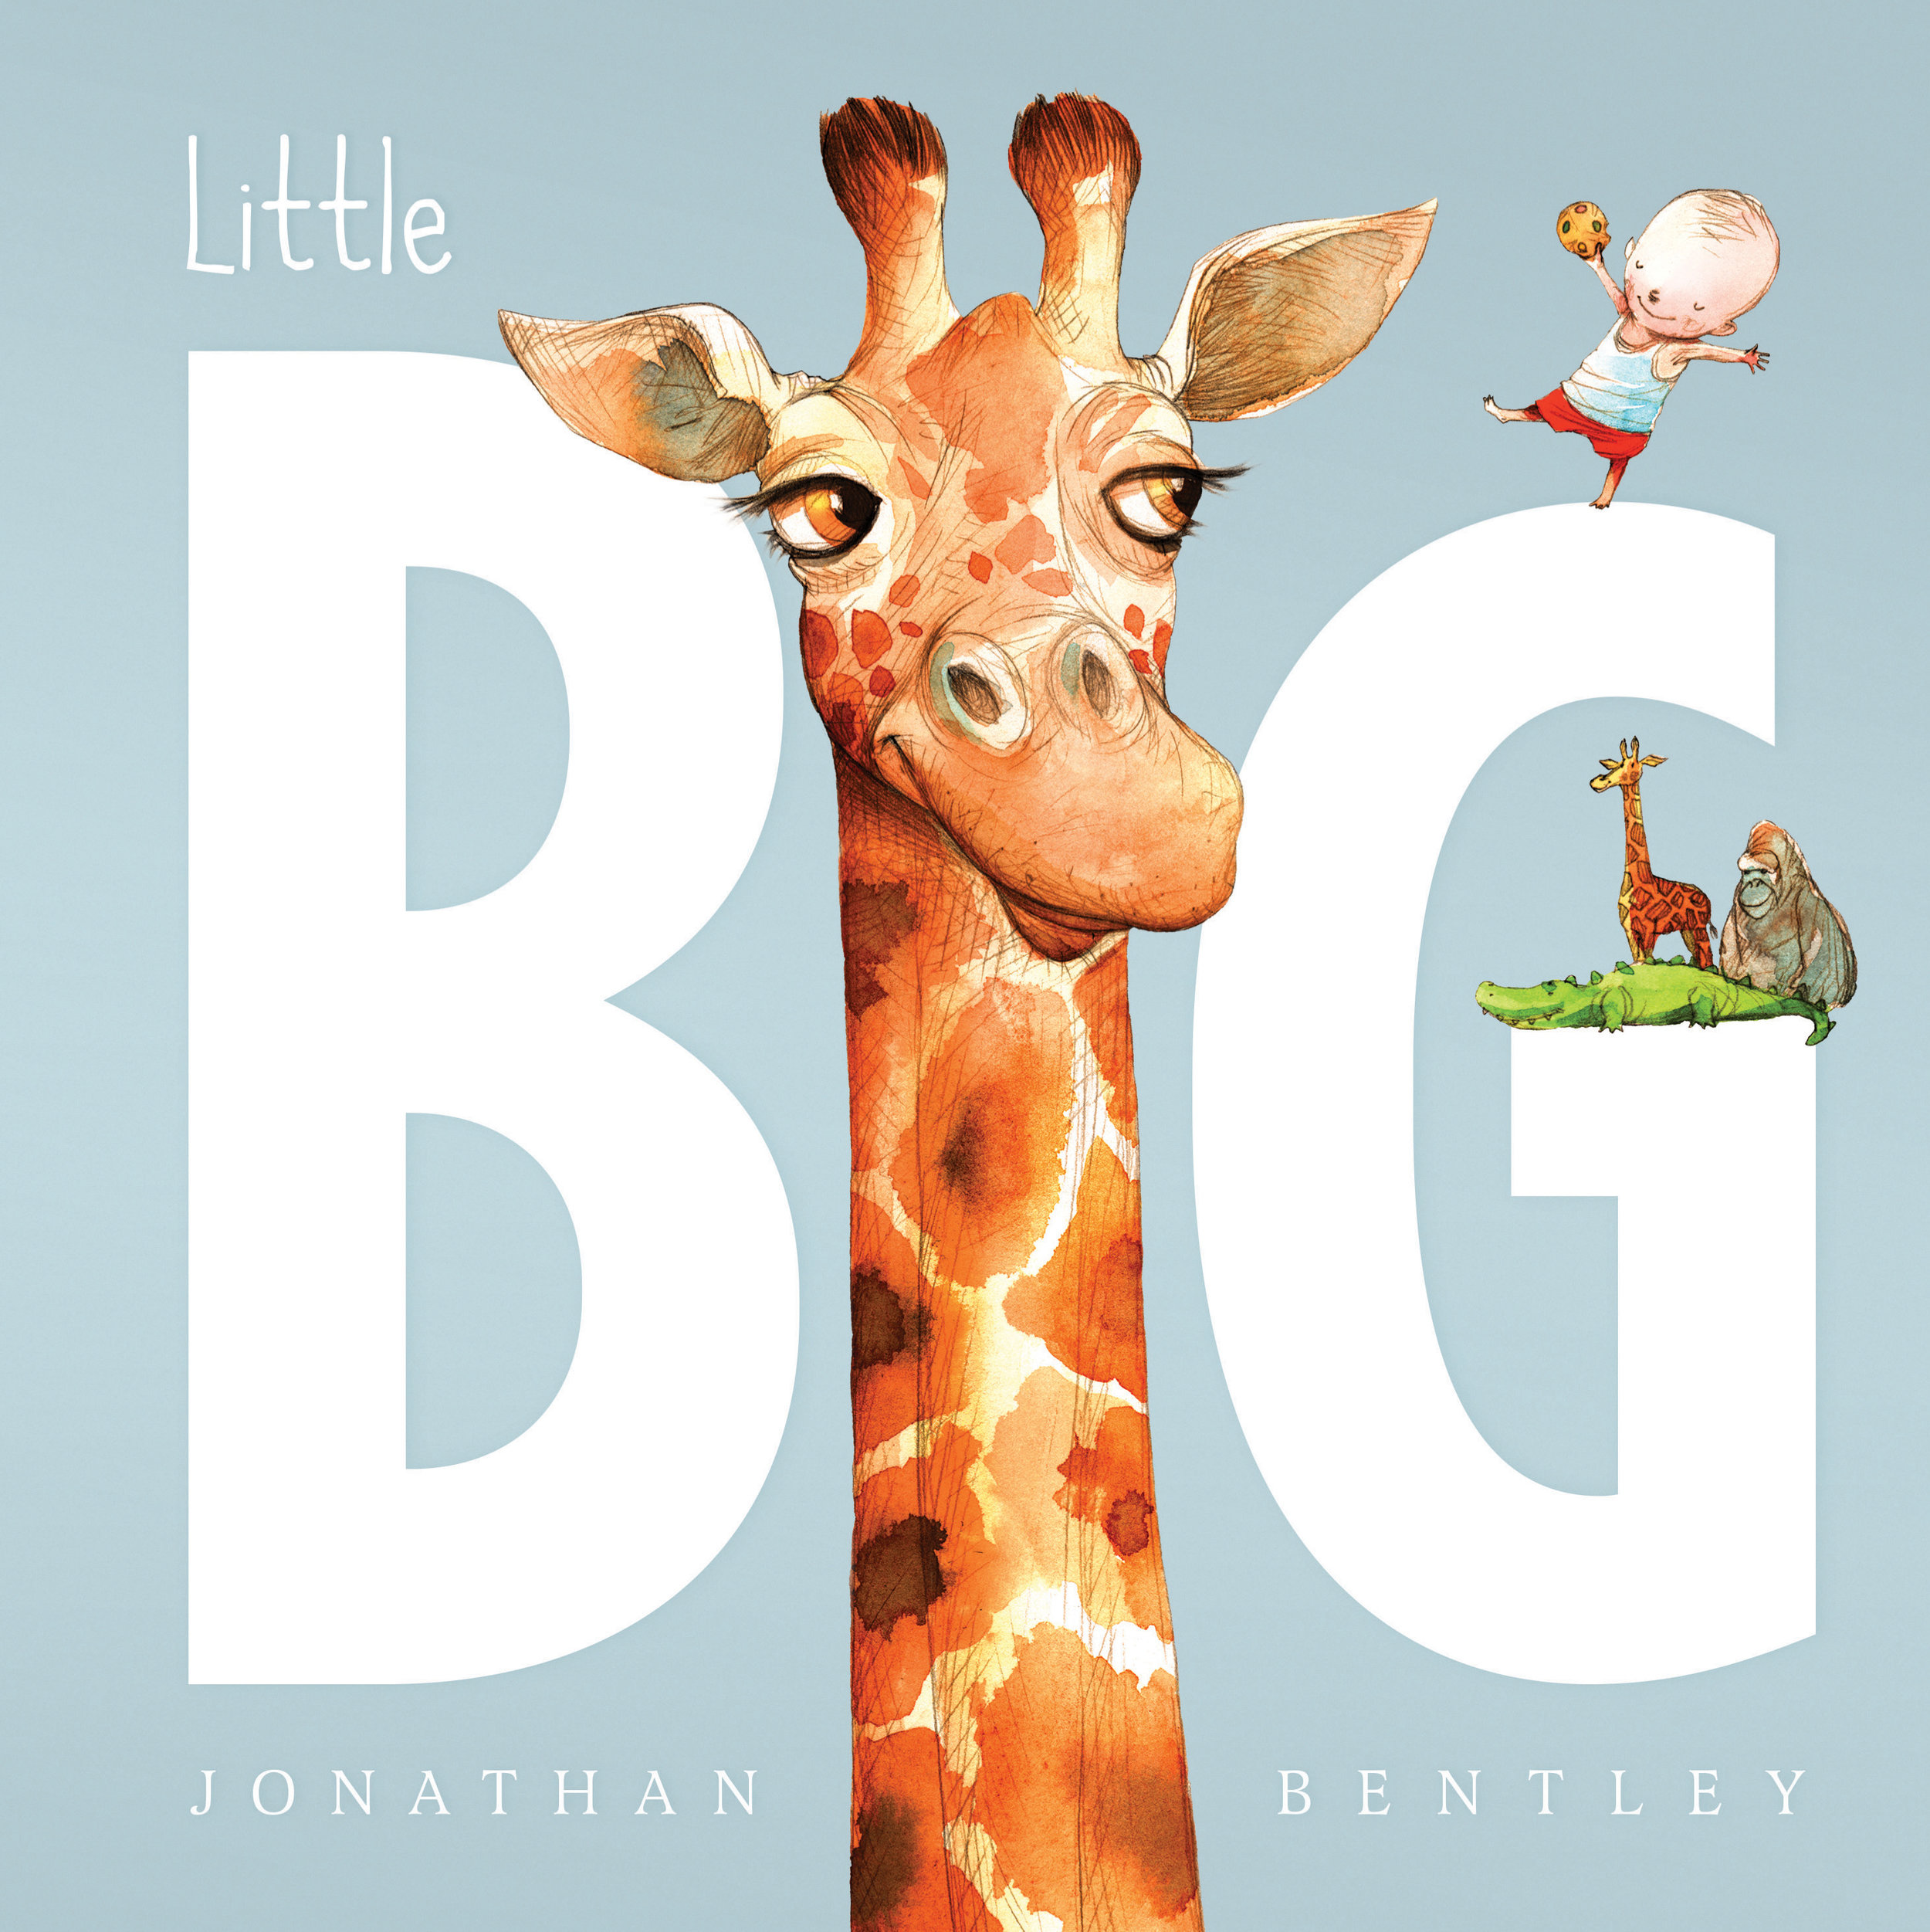 Little Big, Jonathan Bentley  - This book explores the perceived problems of a little boy who constantly compares himself to his much older, bigger, and wiser brother. Our book clubbers loved this book as they all had at least one sibling! This is a fantastic story to read to your little one if they're always wishing they were older!